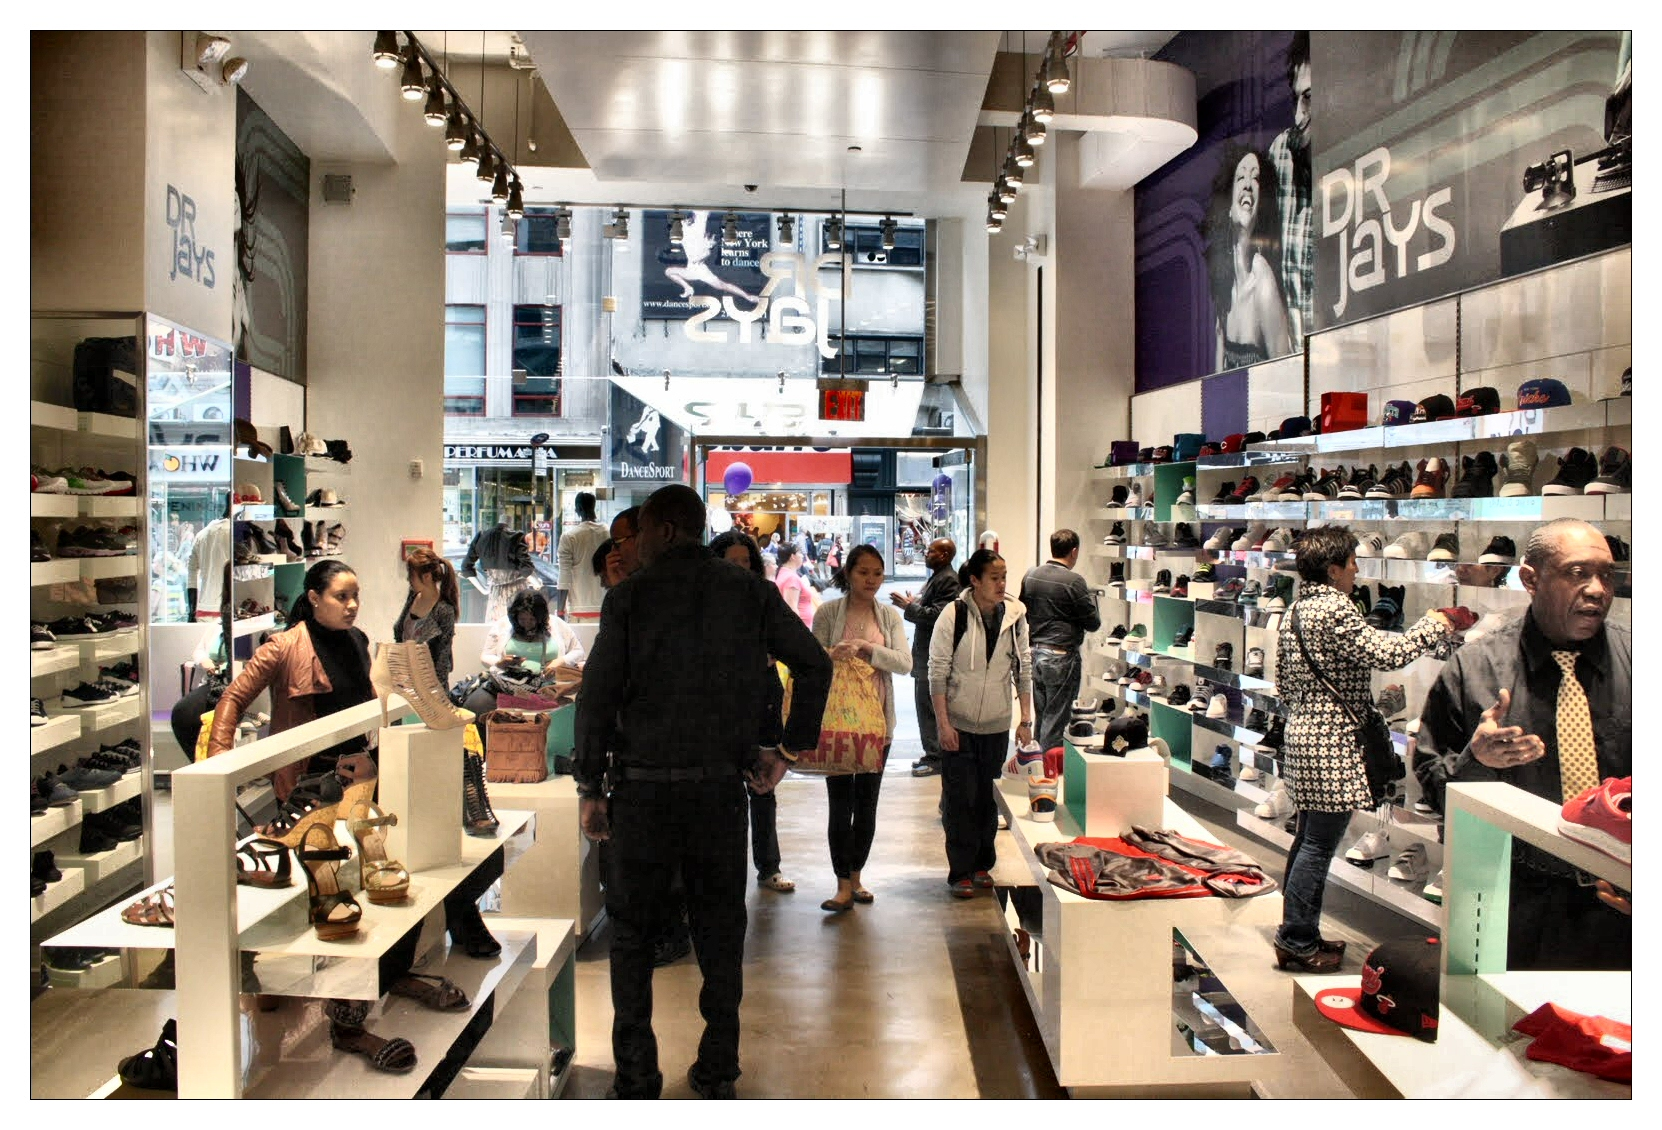 Inside Dr Jays Flagship Store in Manhattan, New York City